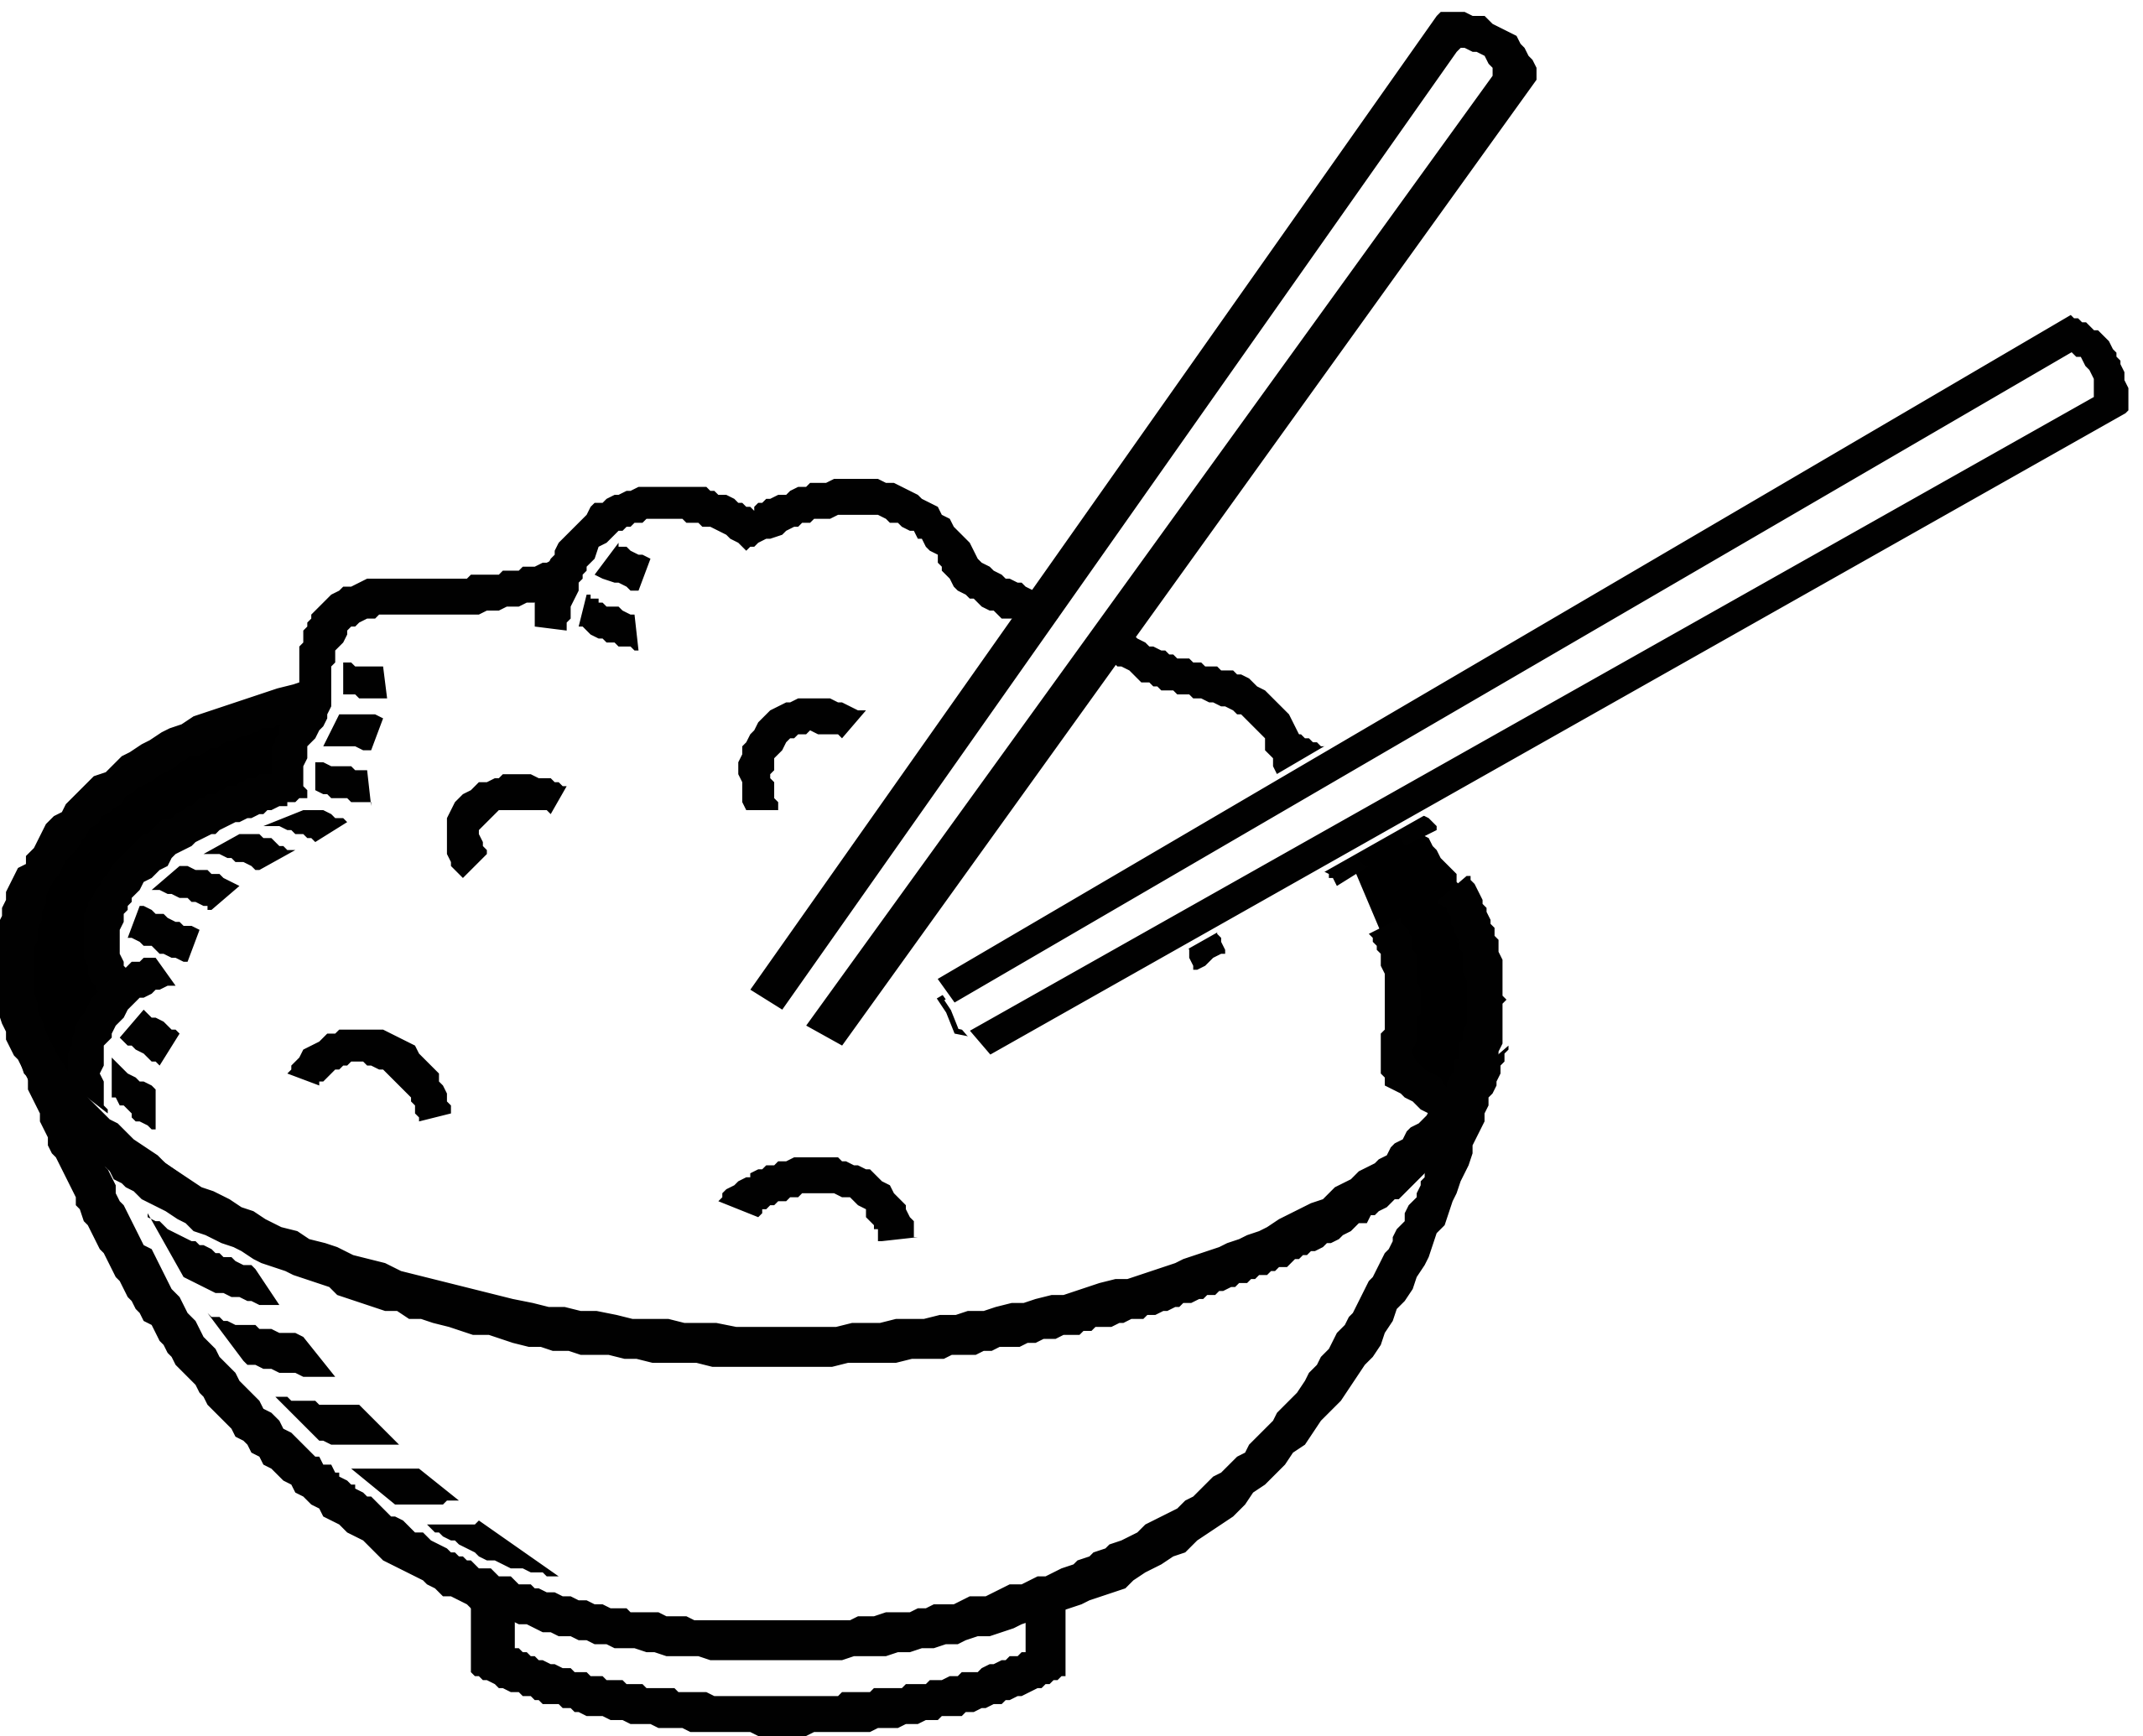 graphic royalty free stock Texting clipart black and white. Cereal panda free images